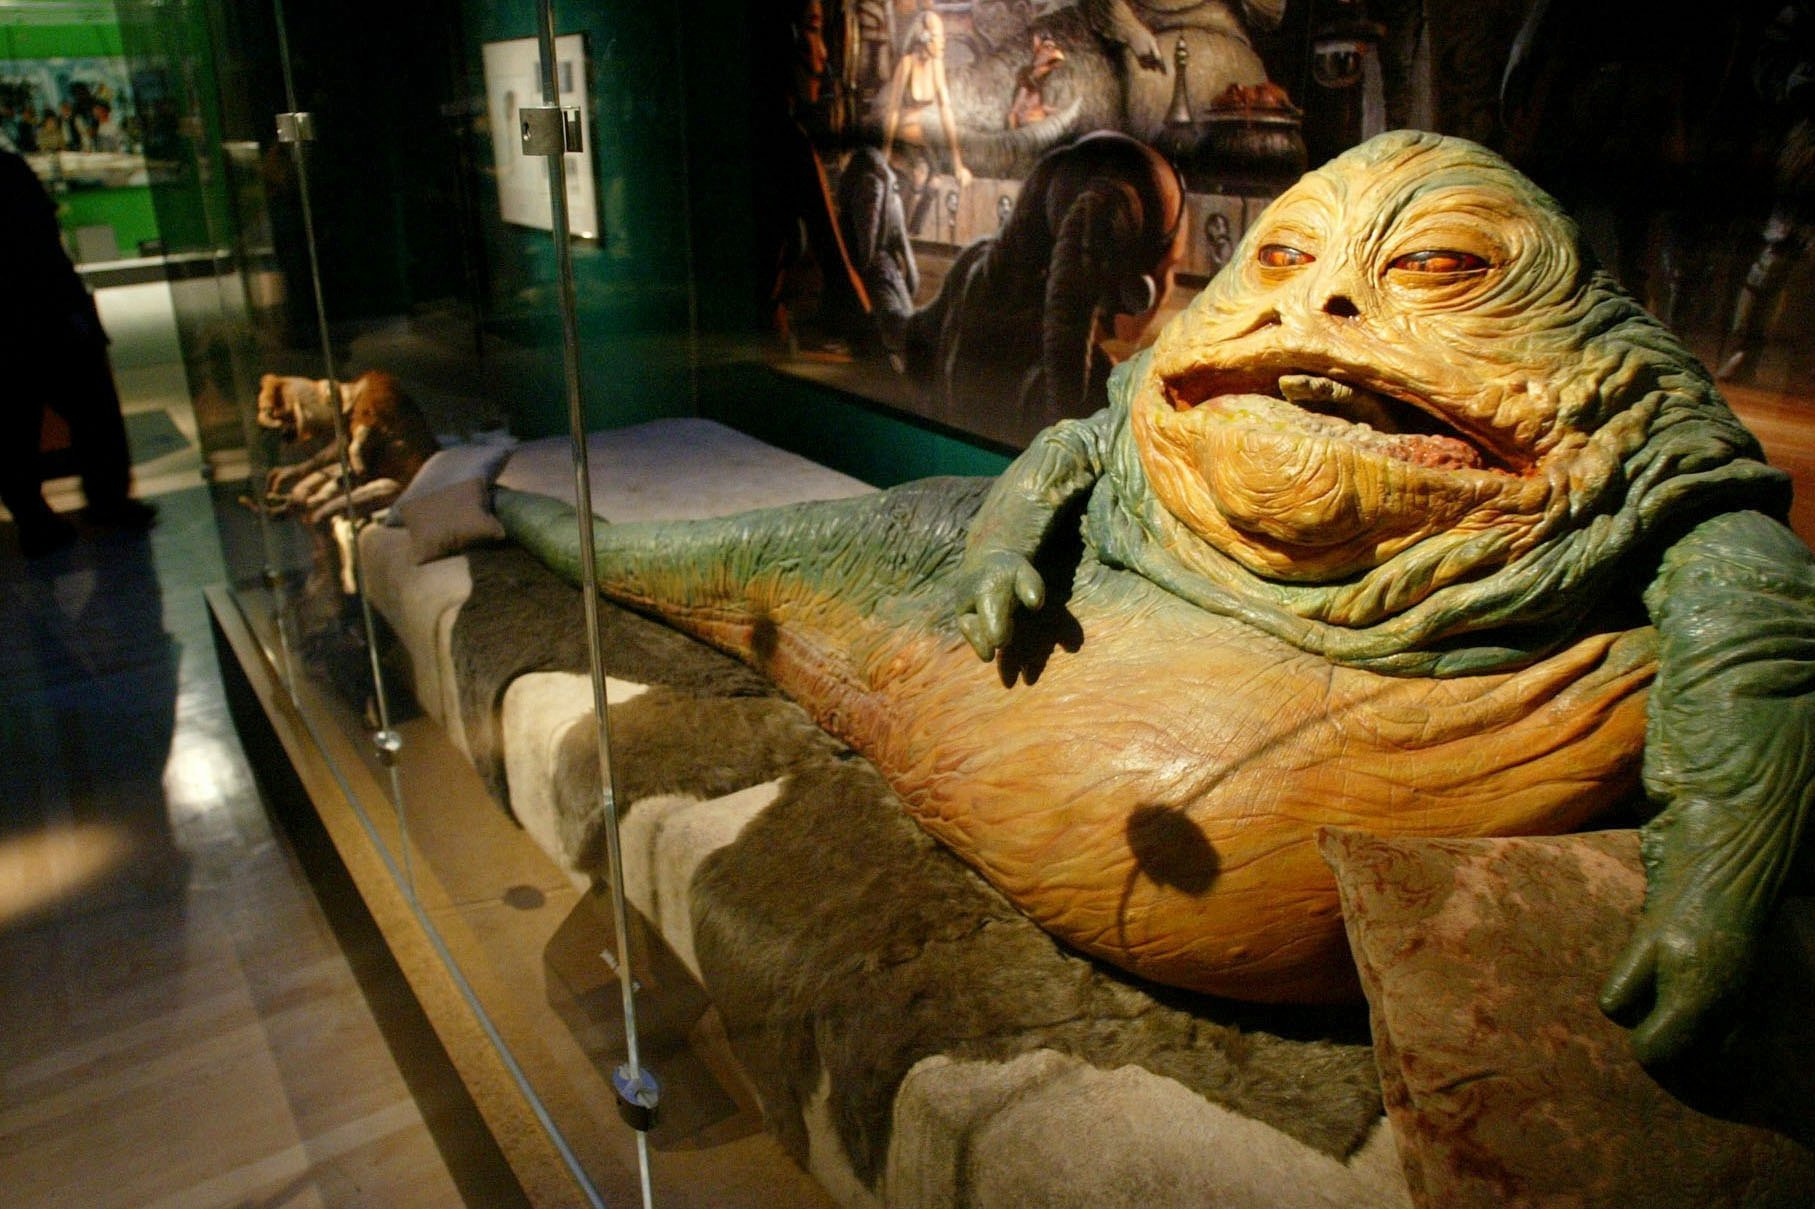 Jabba the Hutt, another Star Wars character who Freeborn helped bring to life.